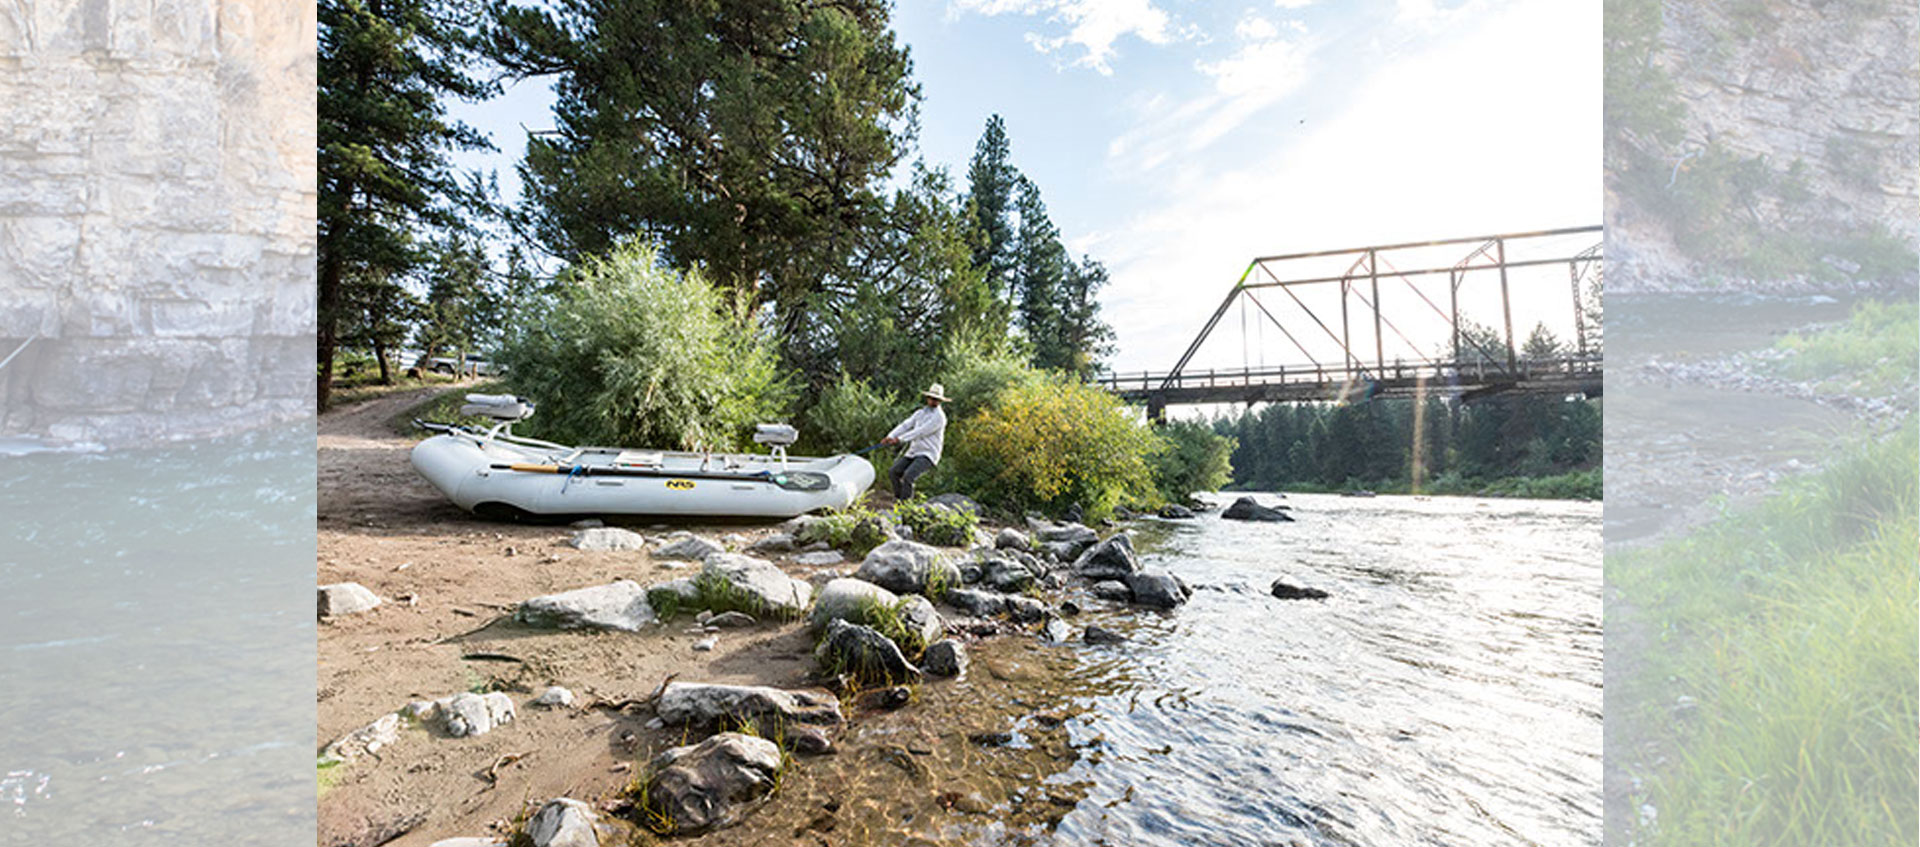 Fly Fishing Guide pulling a Raft to the Blackfoot River boat take-in